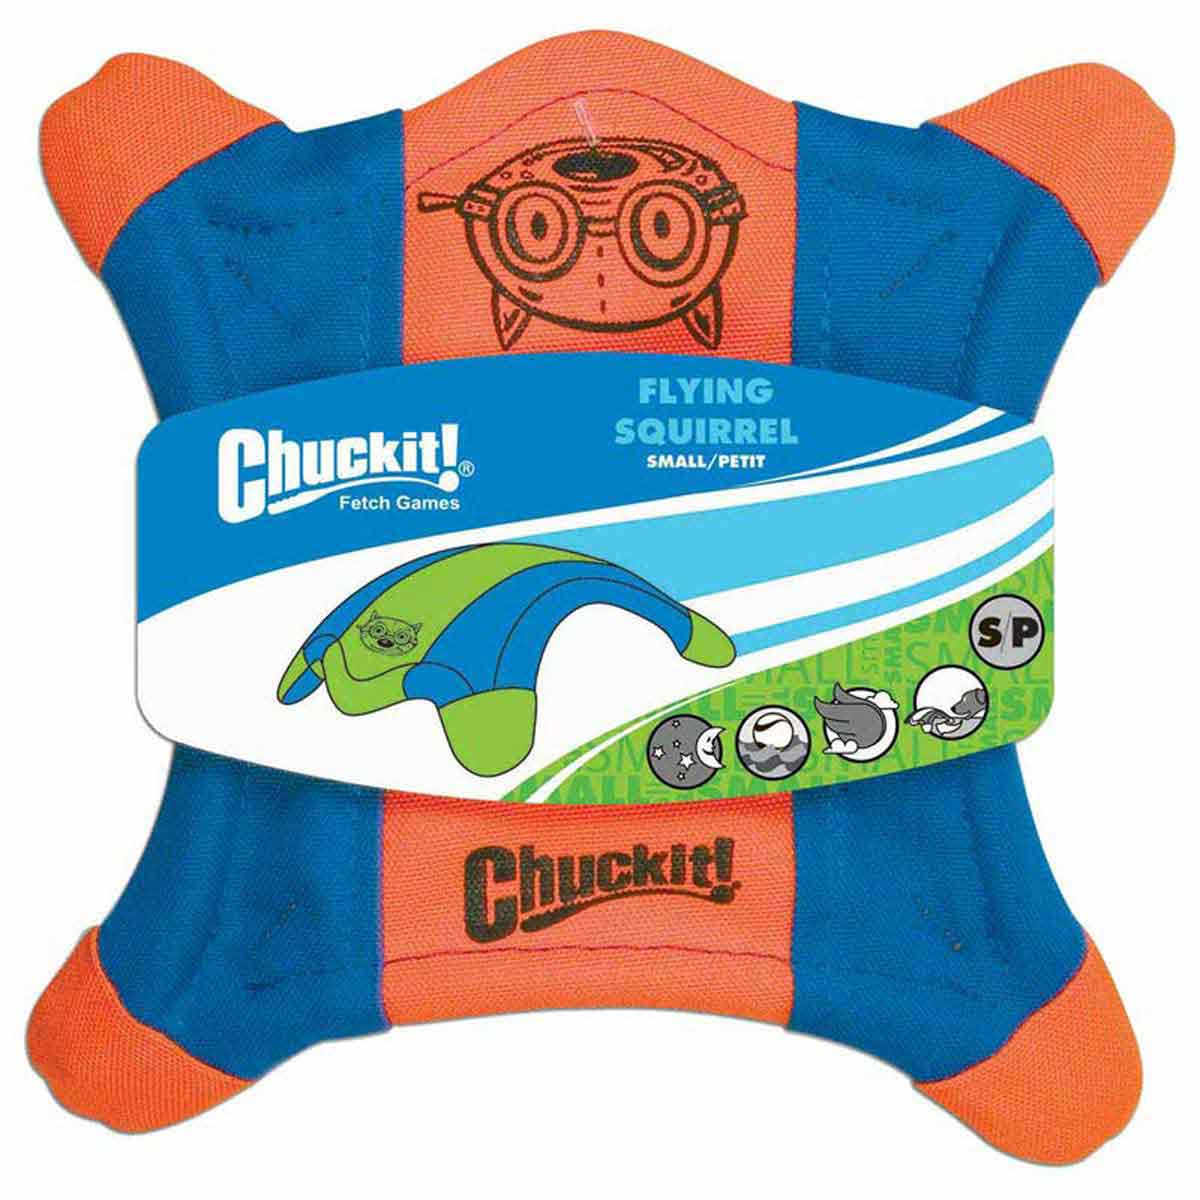 Chuckit! Flying Squirrel Small 9 inch